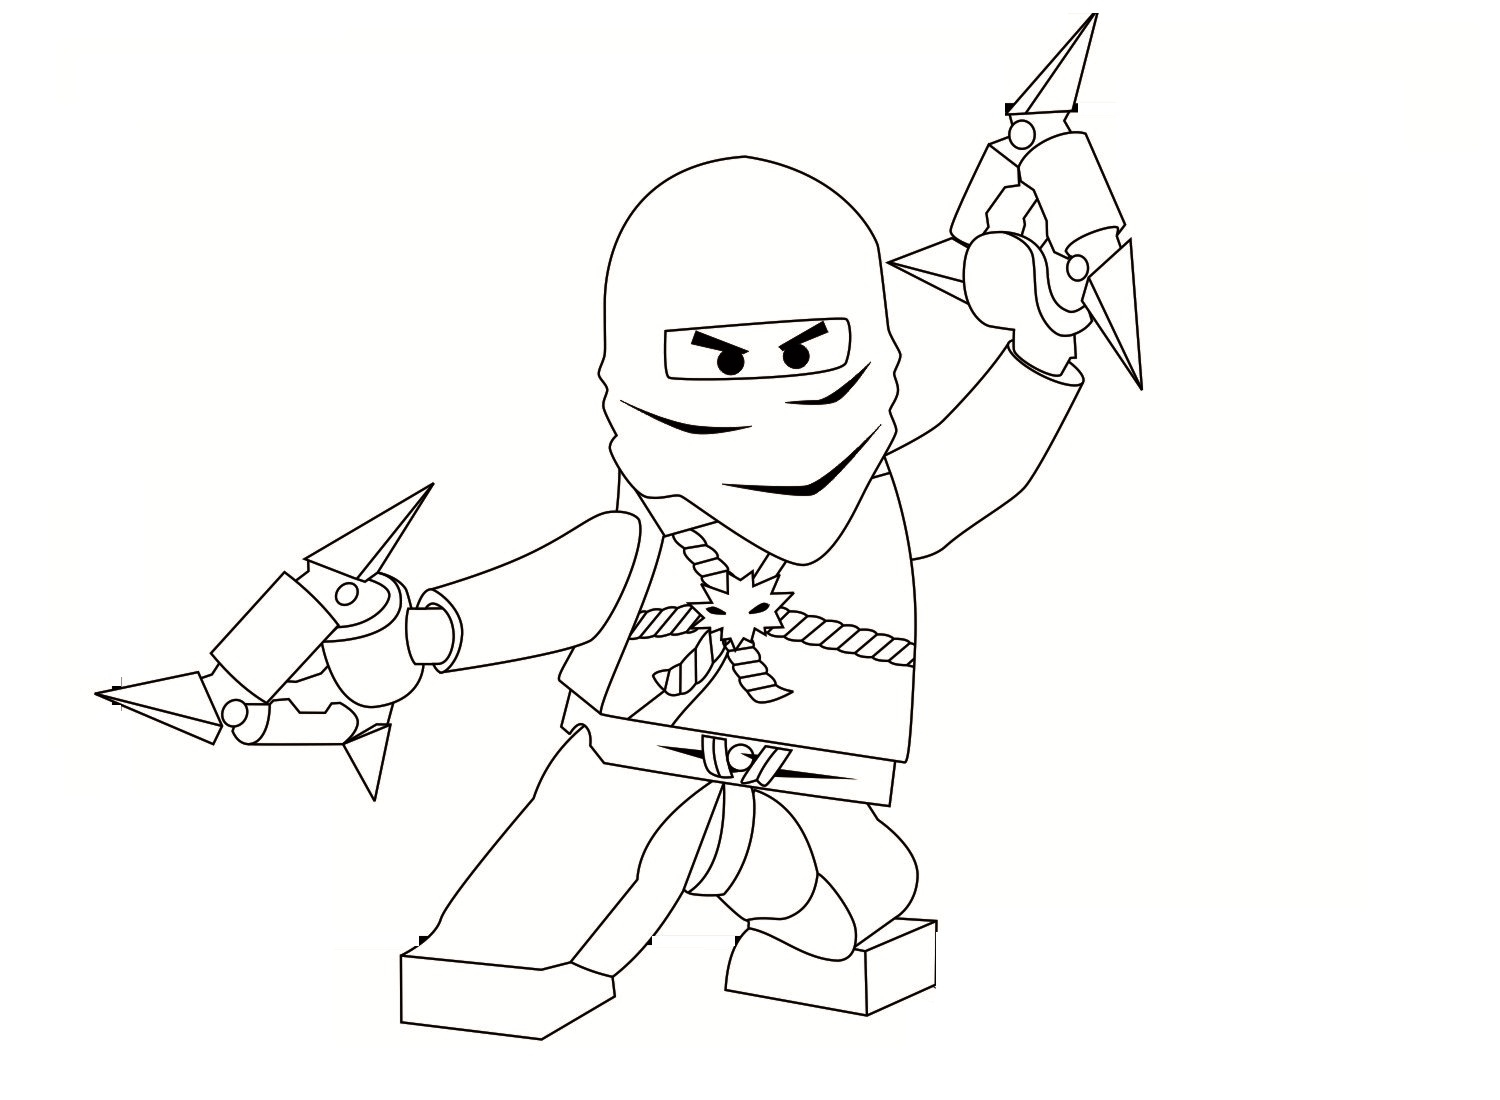 Ninjago Printable Coloring Pages - Free Printable Ninjago Coloring Pages for Kids